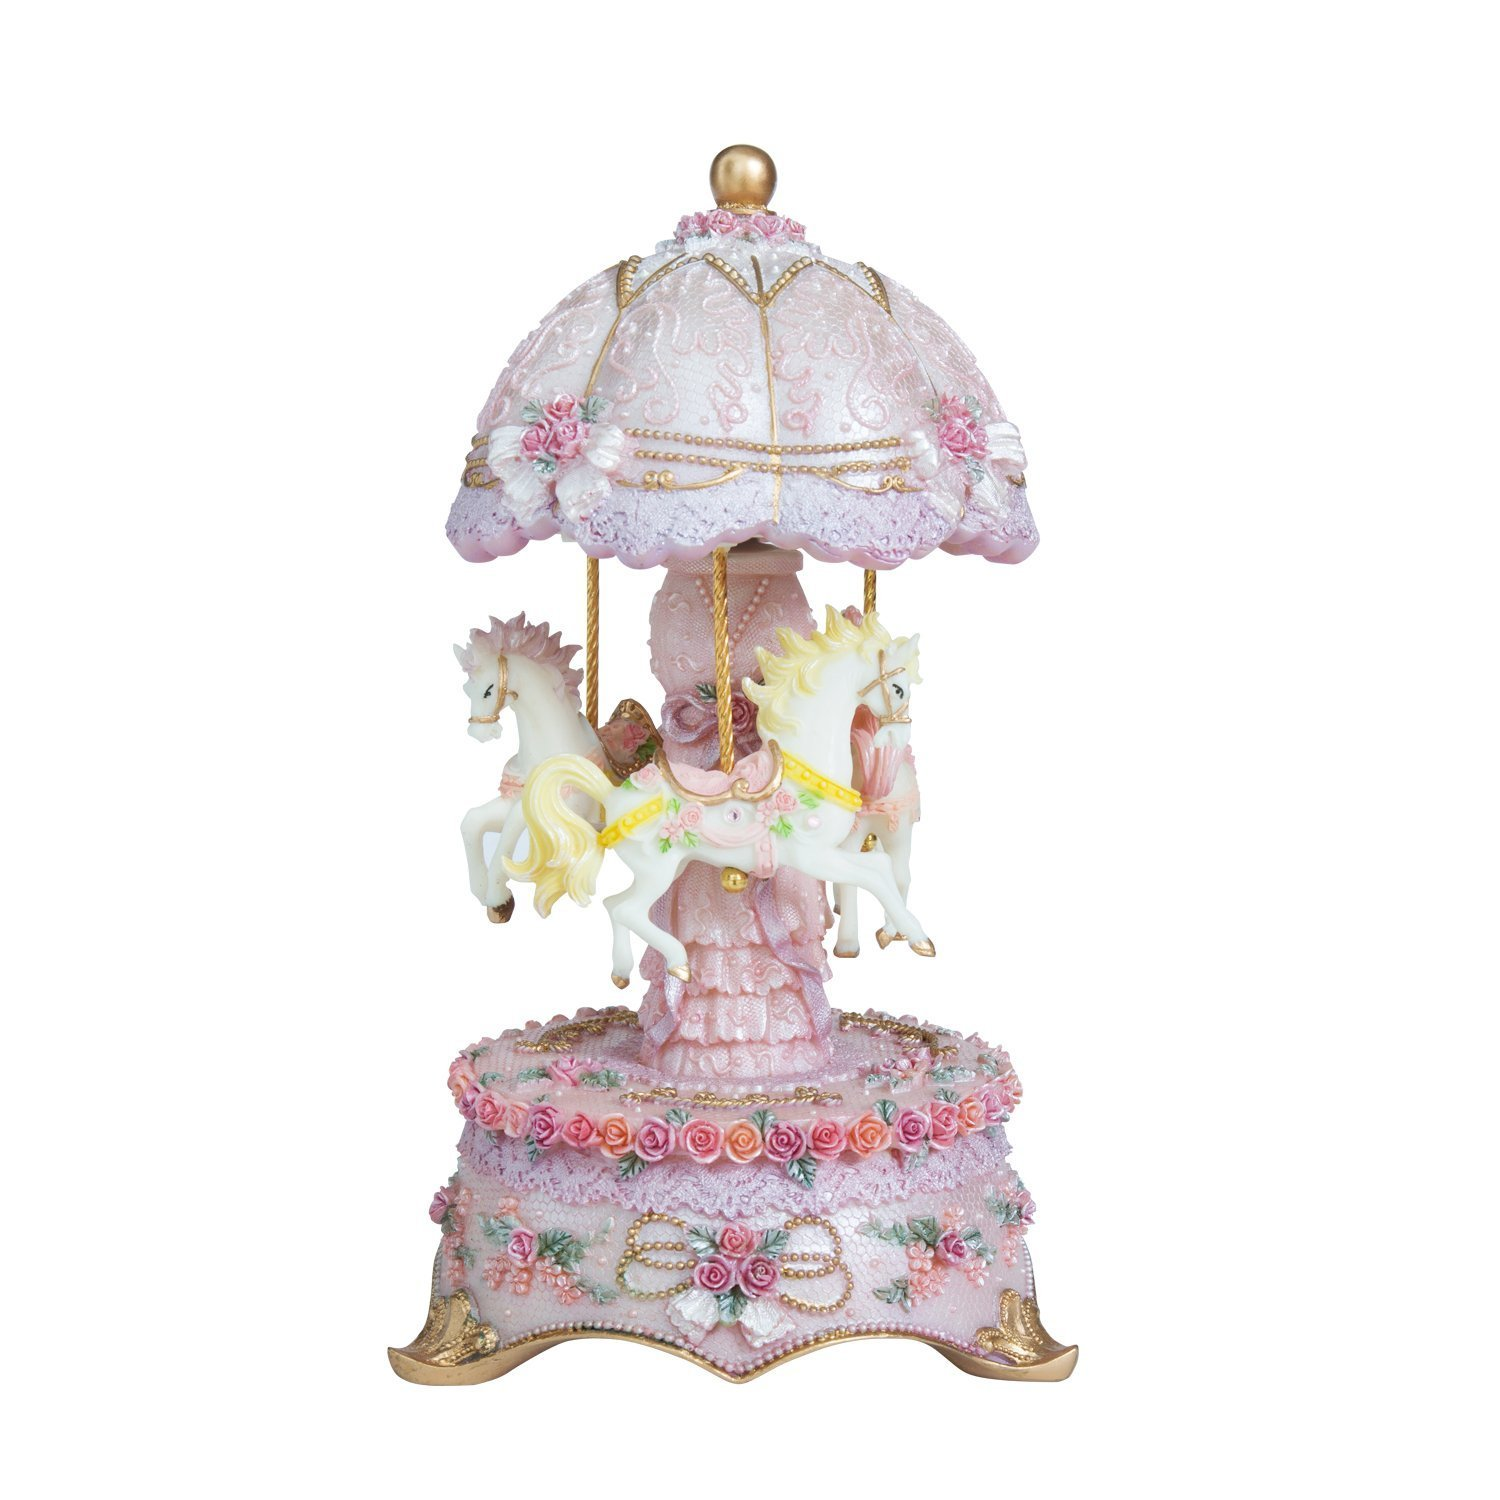 65%OFF【送料無料】 Cimogifts Luxury Colour Light Change LED Cimogifts Colour Light Luminous Rotating 3-horse Carousel Musical Box,Pink B01LH3INZM, ムツザワマチ:4dac0979 --- arcego.dominiotemporario.com